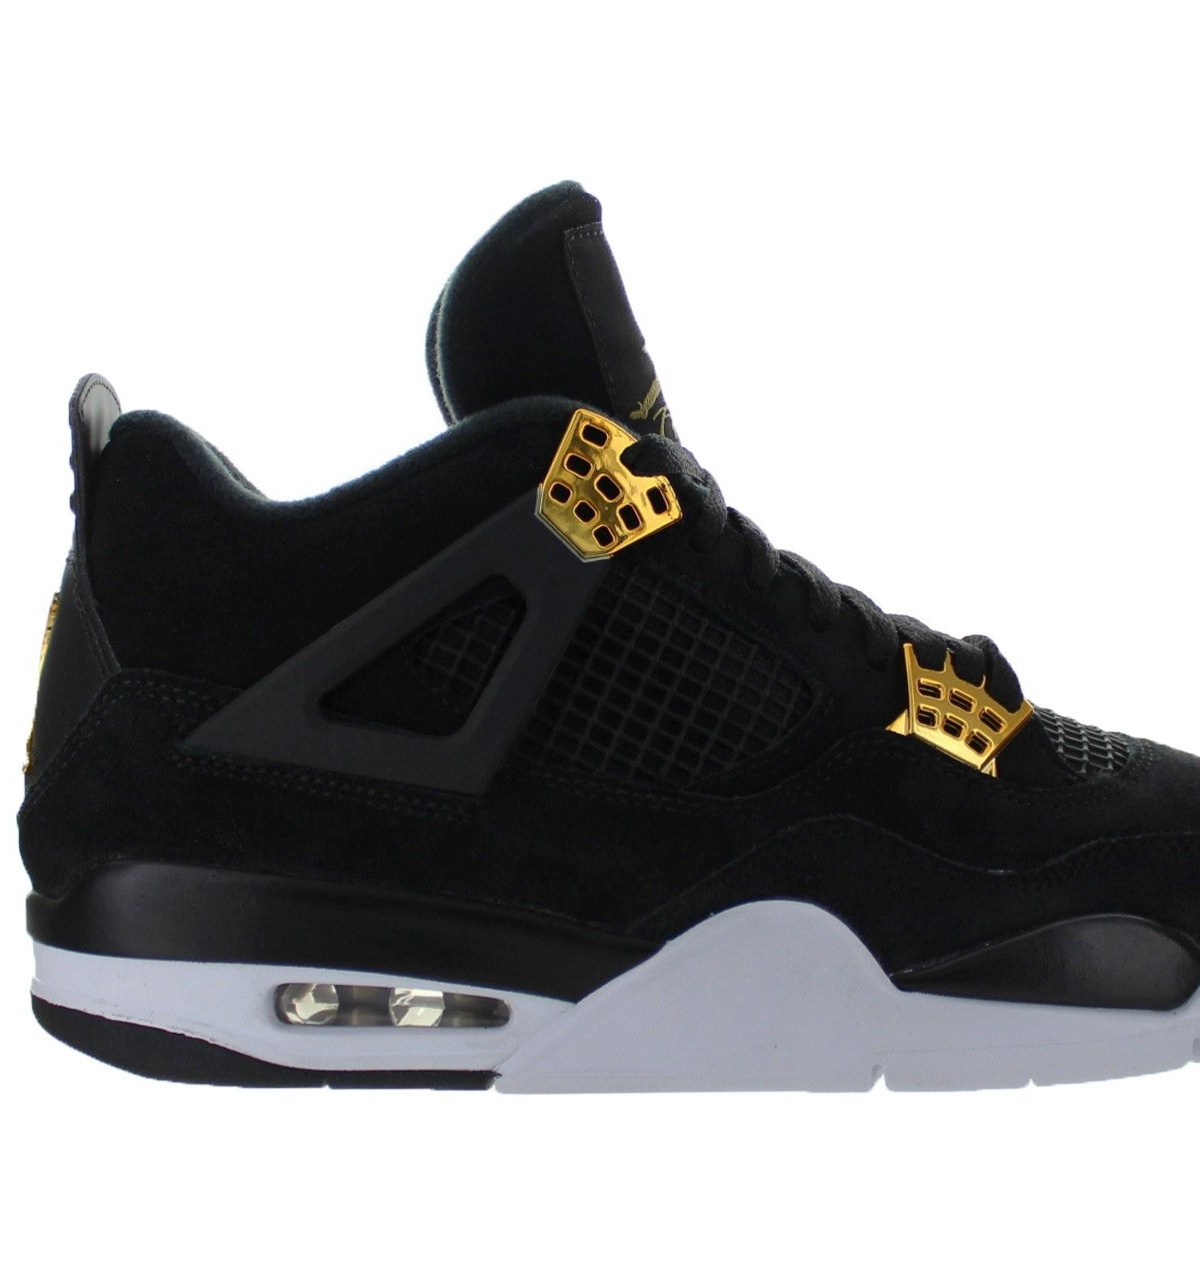 fc3a34309c6a Mens Air Jordan Retro 4 IV Royalty Black Metallic Gold White 308497 ...